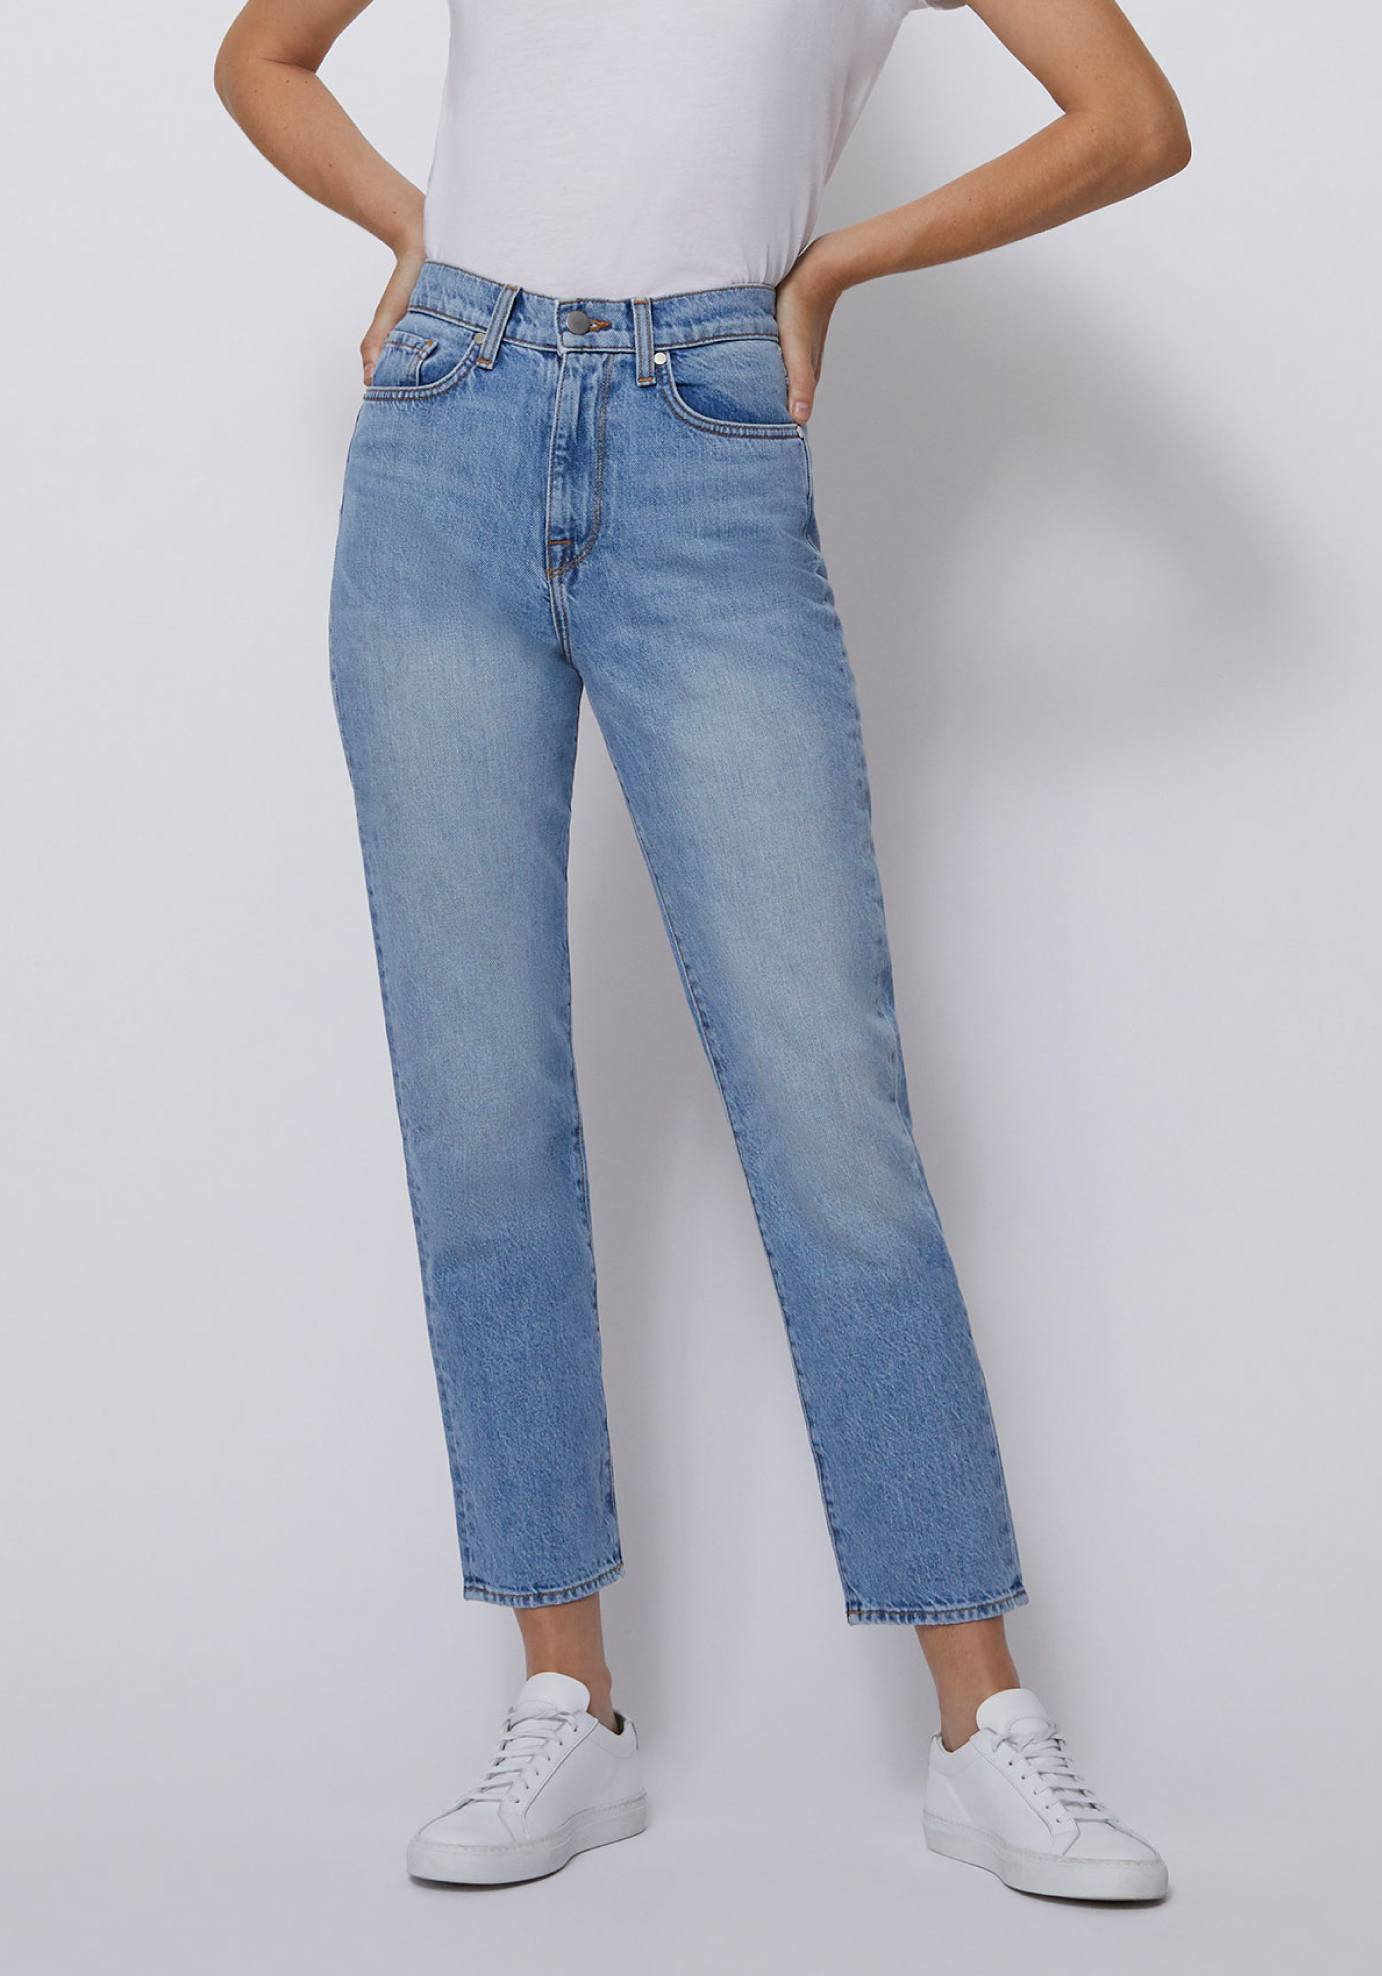 Shop Women's Vintage Straight Jeans